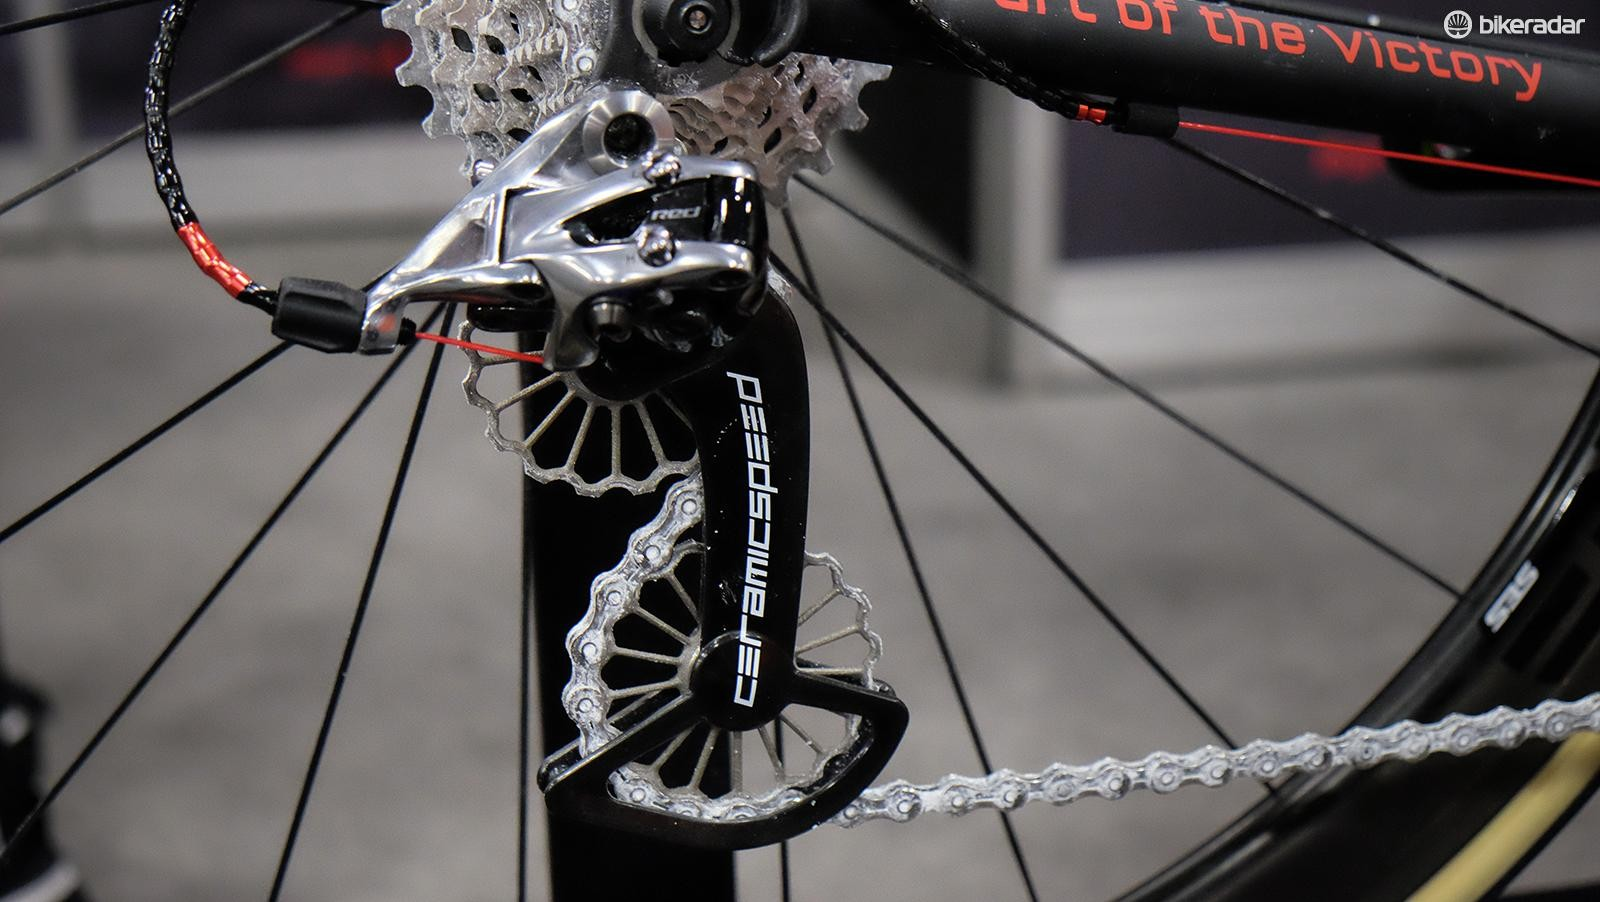 CeramicSpeed's new 3D printed titanium jockey wheels